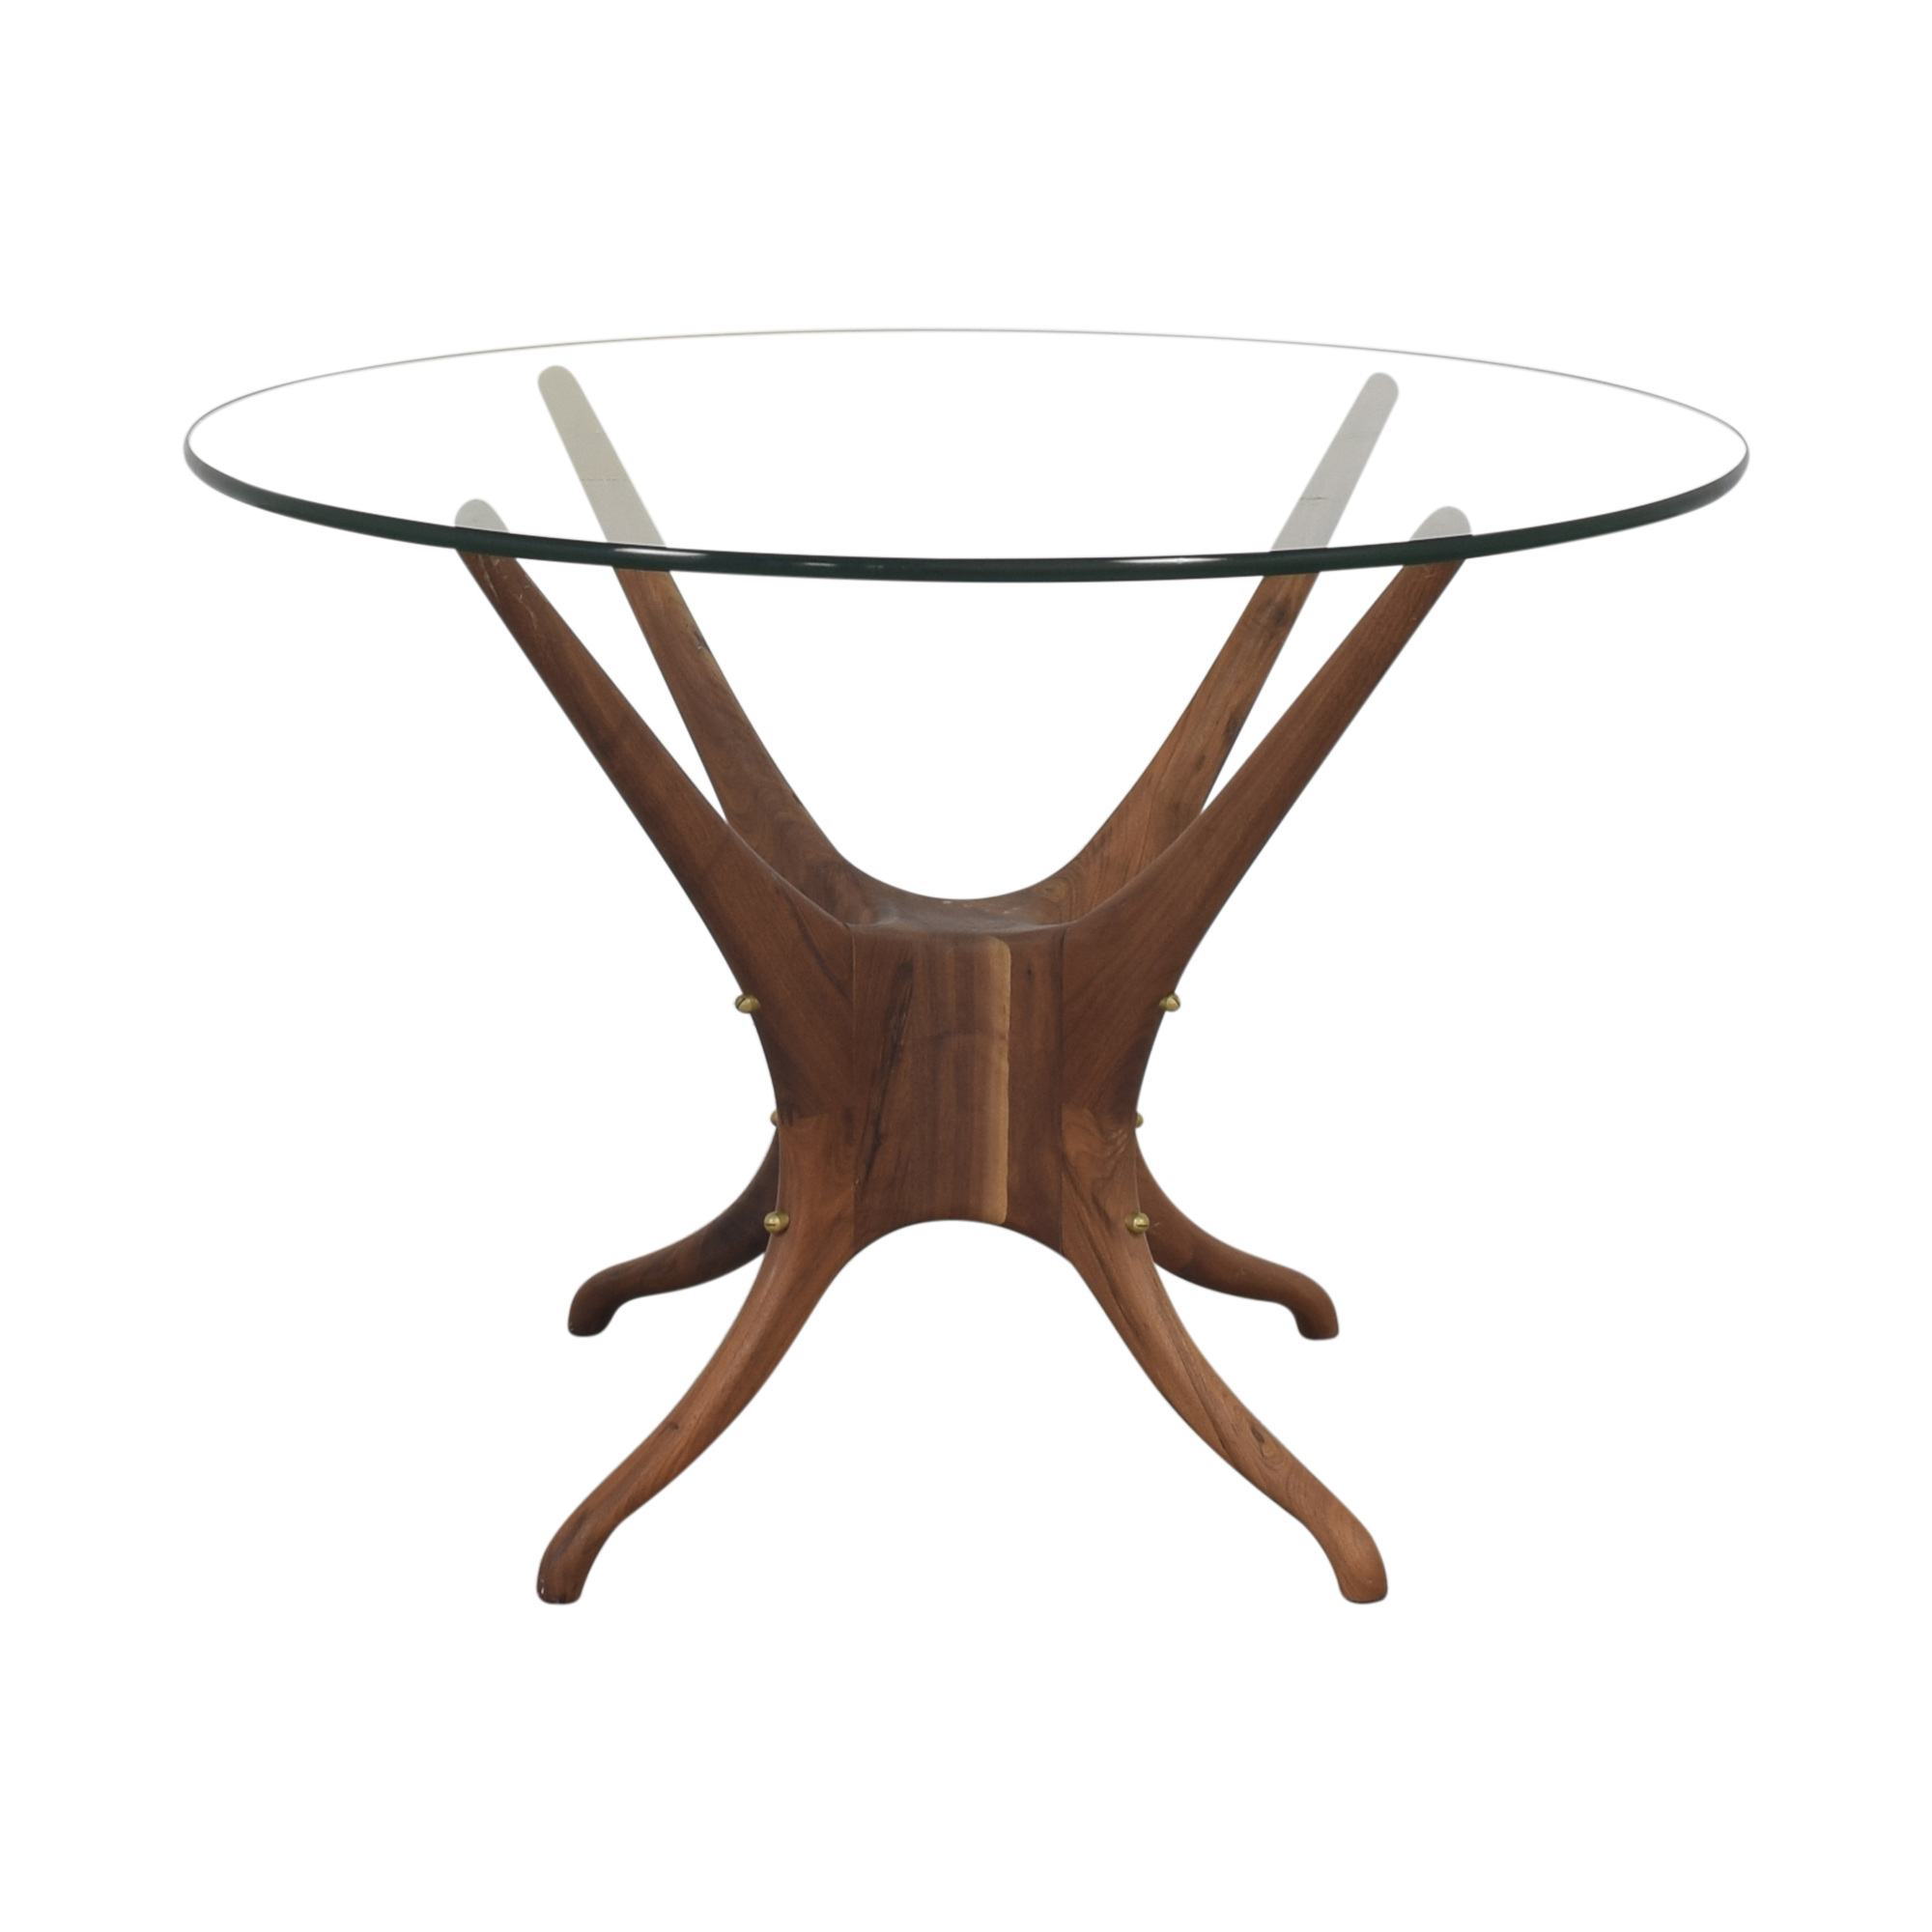 Organic Modernism Organic Modernism Okto Round Dining Table for sale